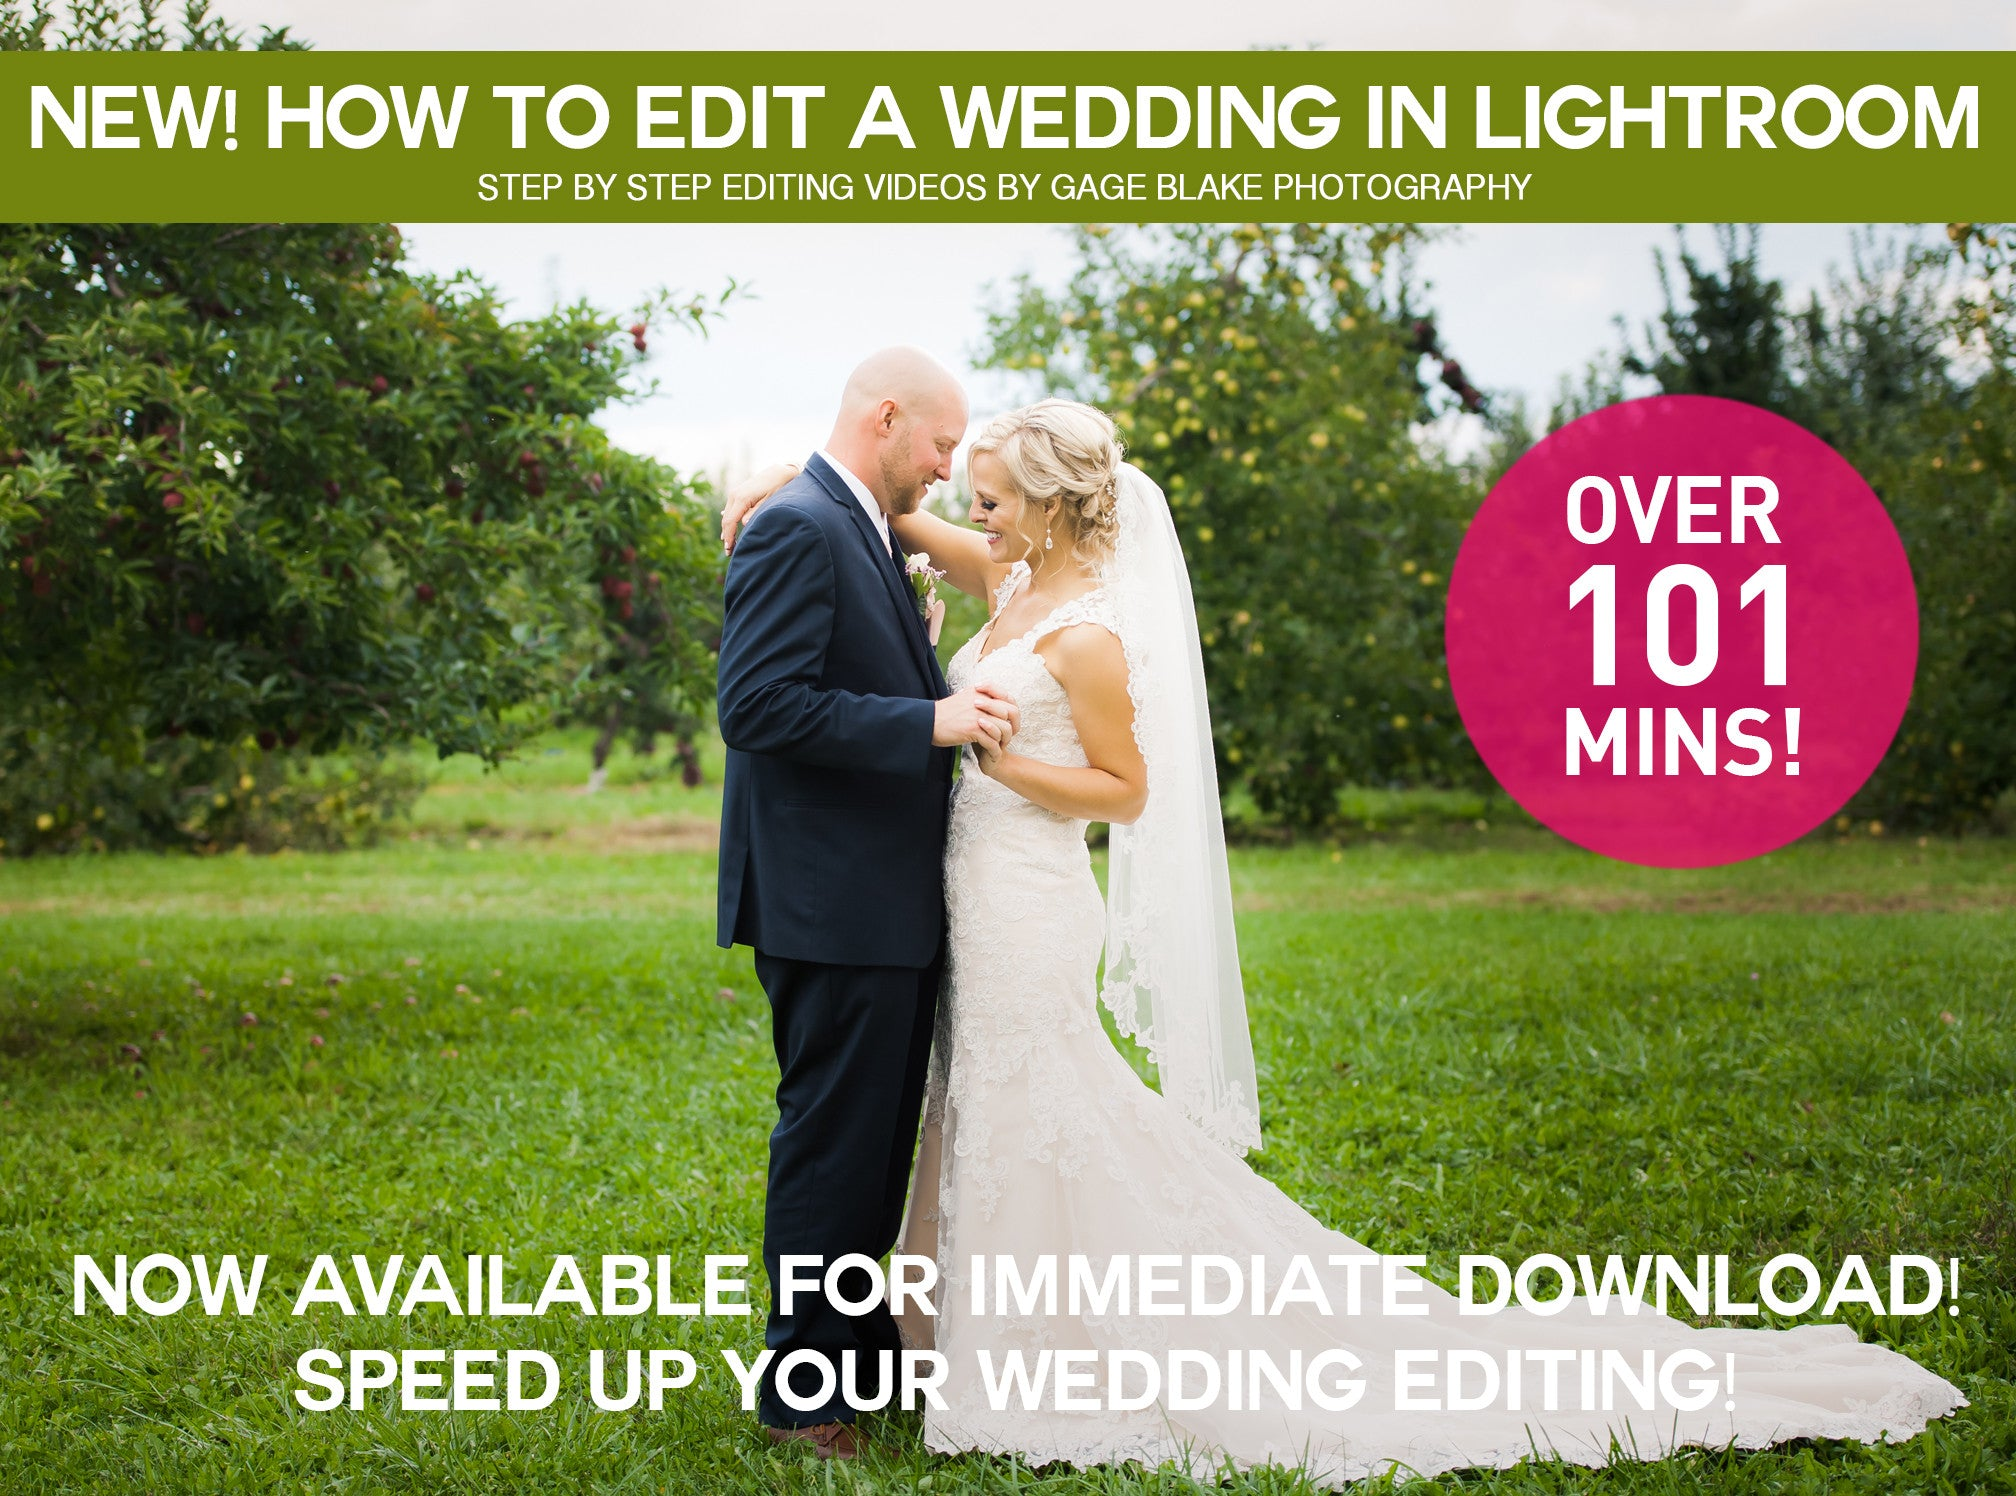 New over 101 minutes how to quickly edit a wedding using how to quickly edit a wedding using lightroom video collection by gage blake photography ccuart Choice Image